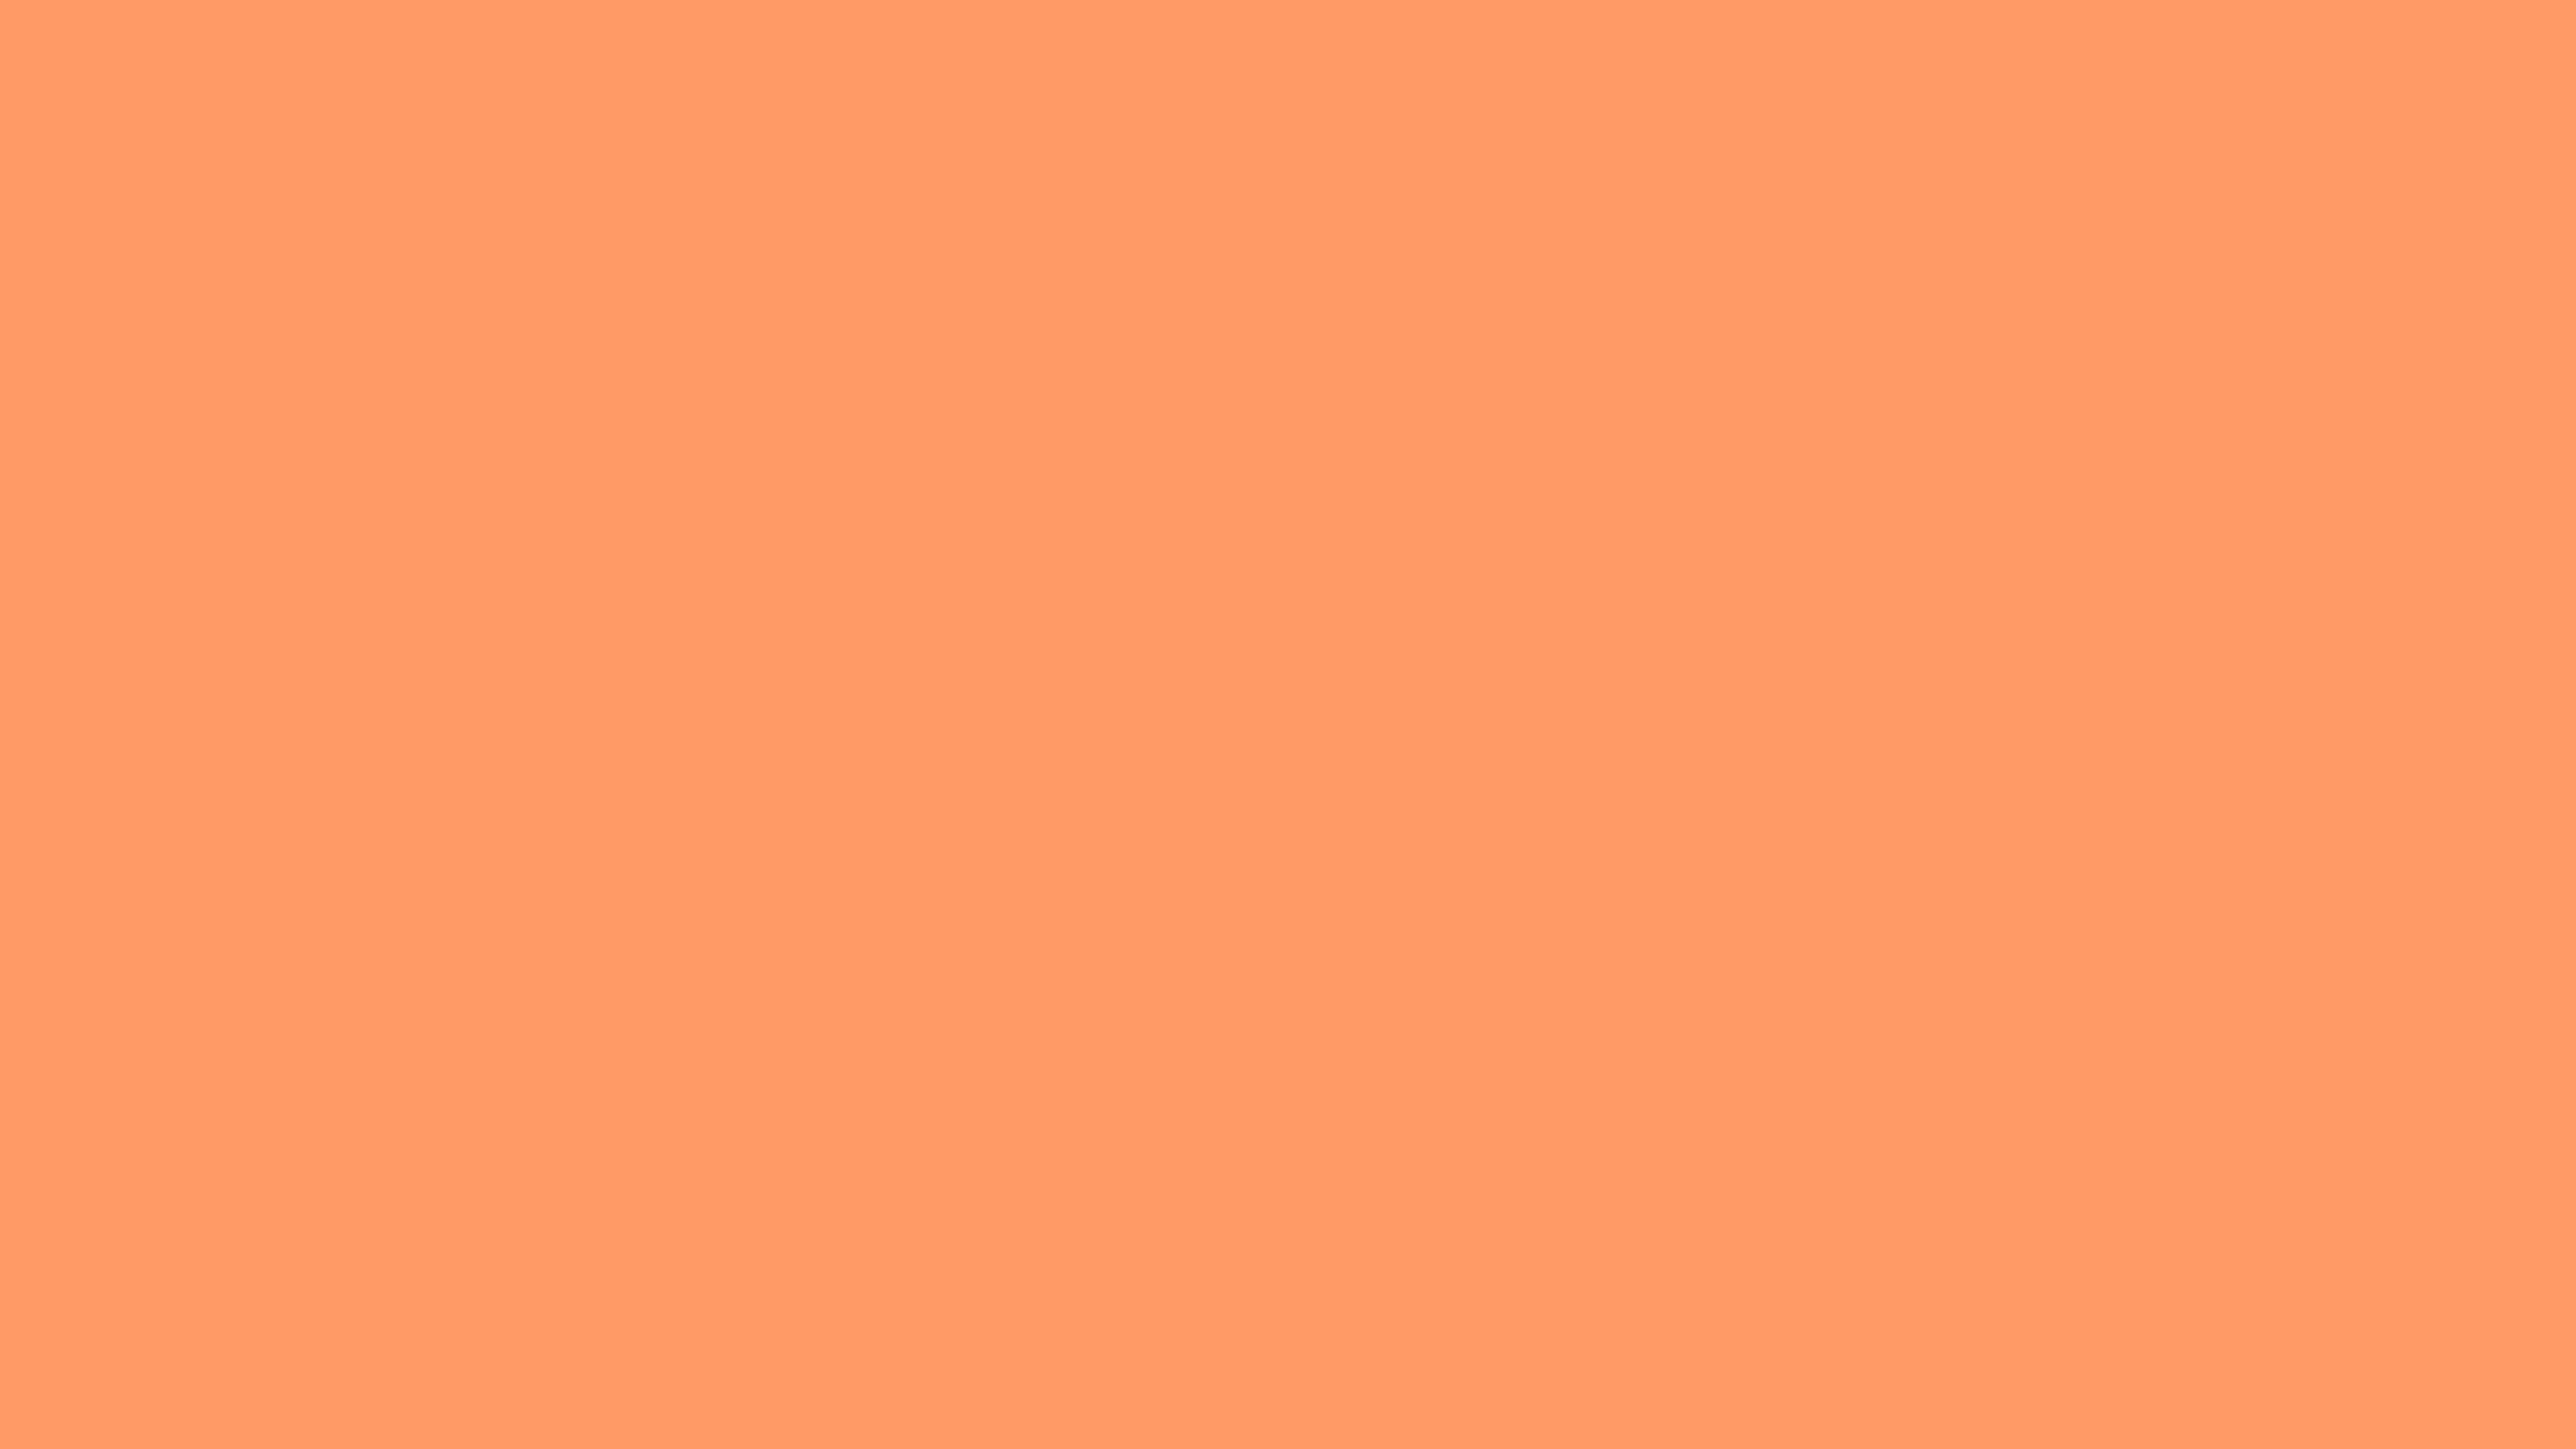 5120x2880 Pink-orange Solid Color Background